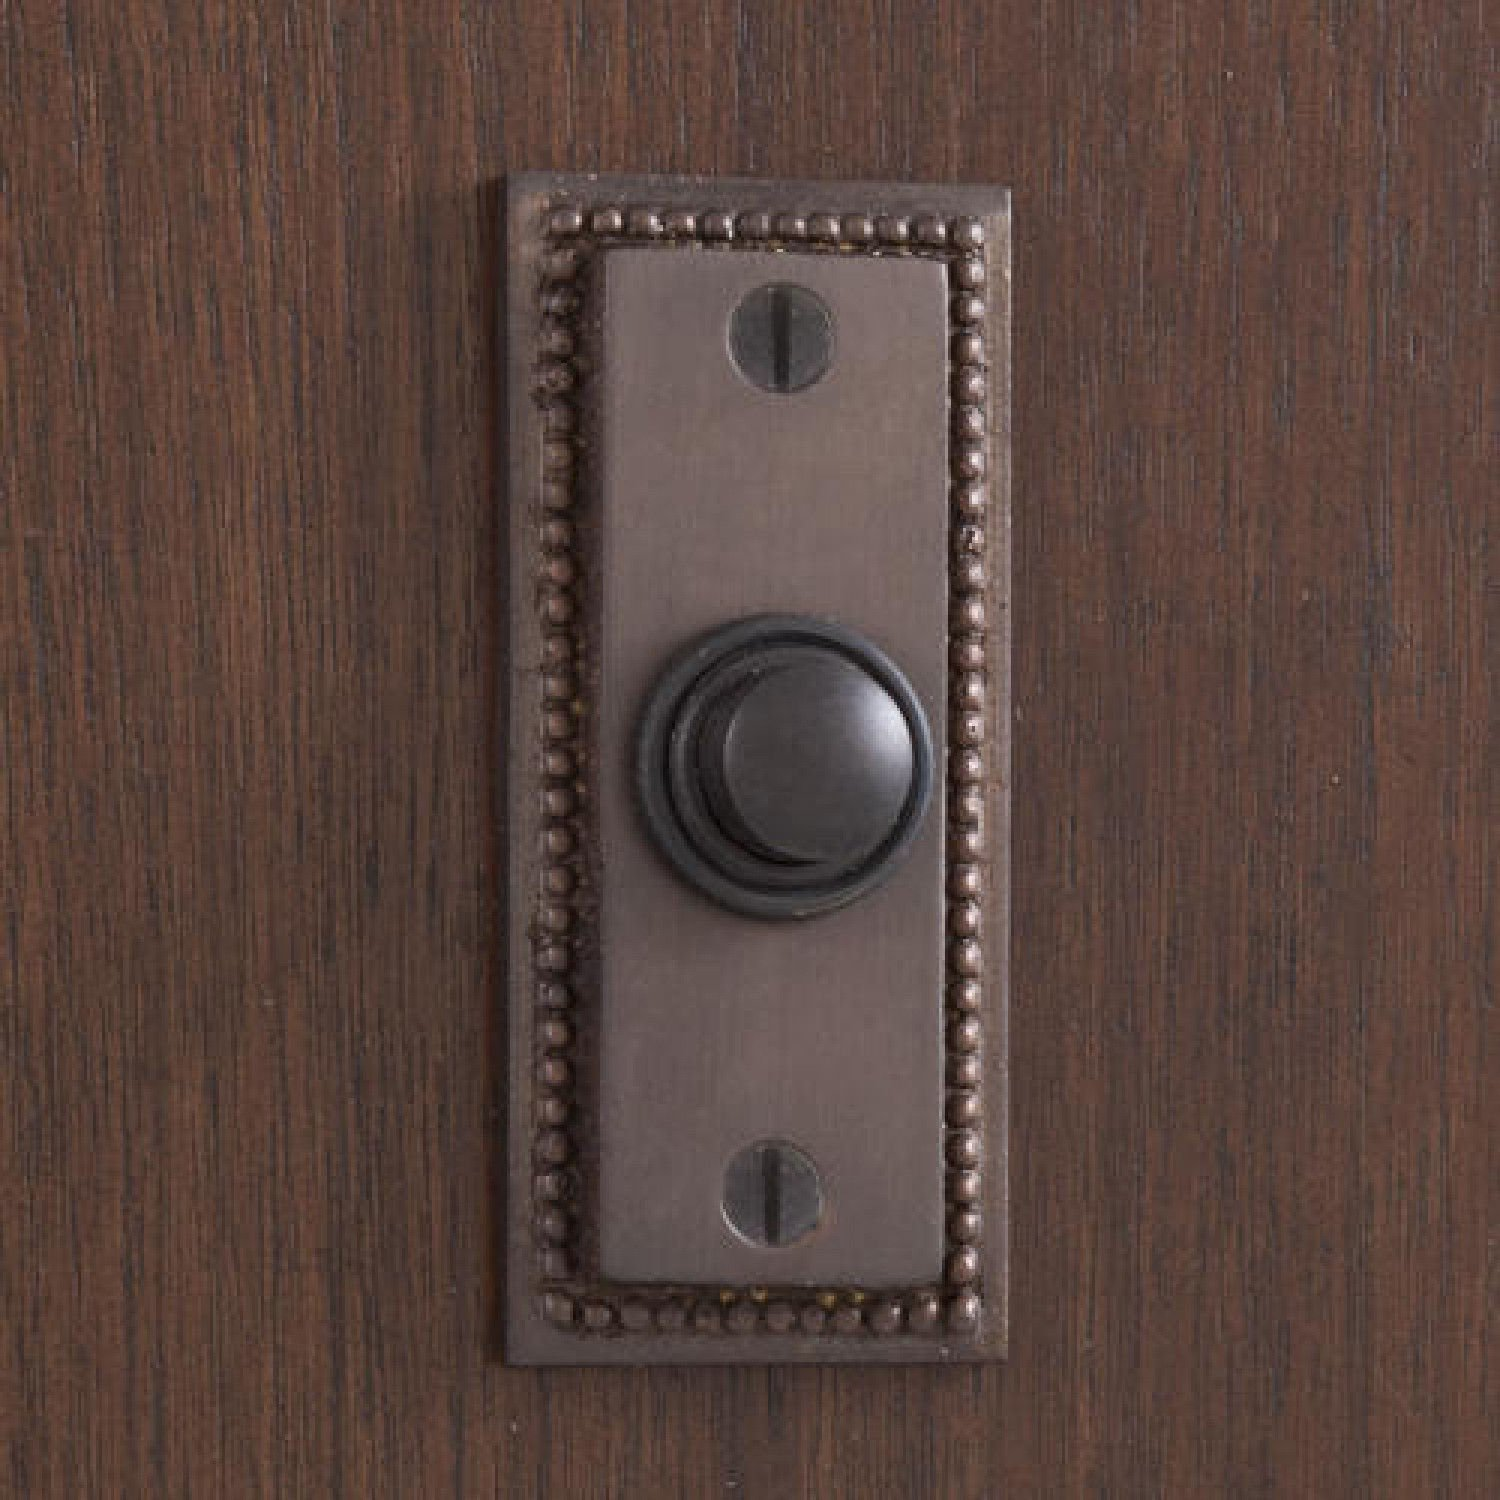 Casa Hardware Beaded Rectangular Solid Brass Metal Doorbell with Push Button in Oil Rubbed Bronze Finish